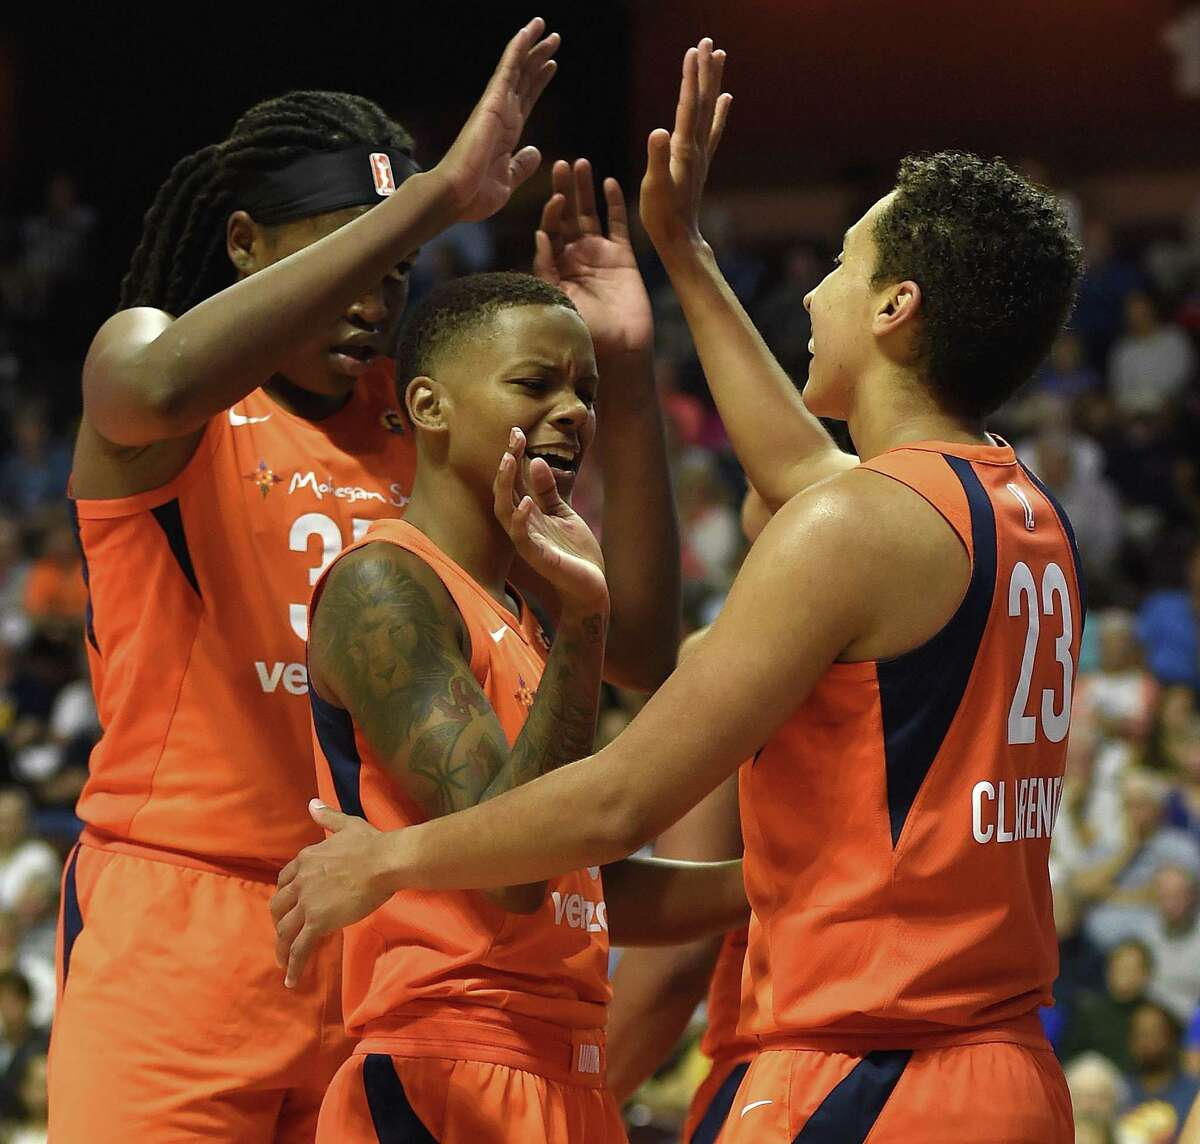 Connecticut Sun center Jonquel Jones, left, and guard Courtney Williams congratulate Layshia Clarendon after she scored and was fouled on a play against the Minnesota Lynx during the second half of on Aug. 17.